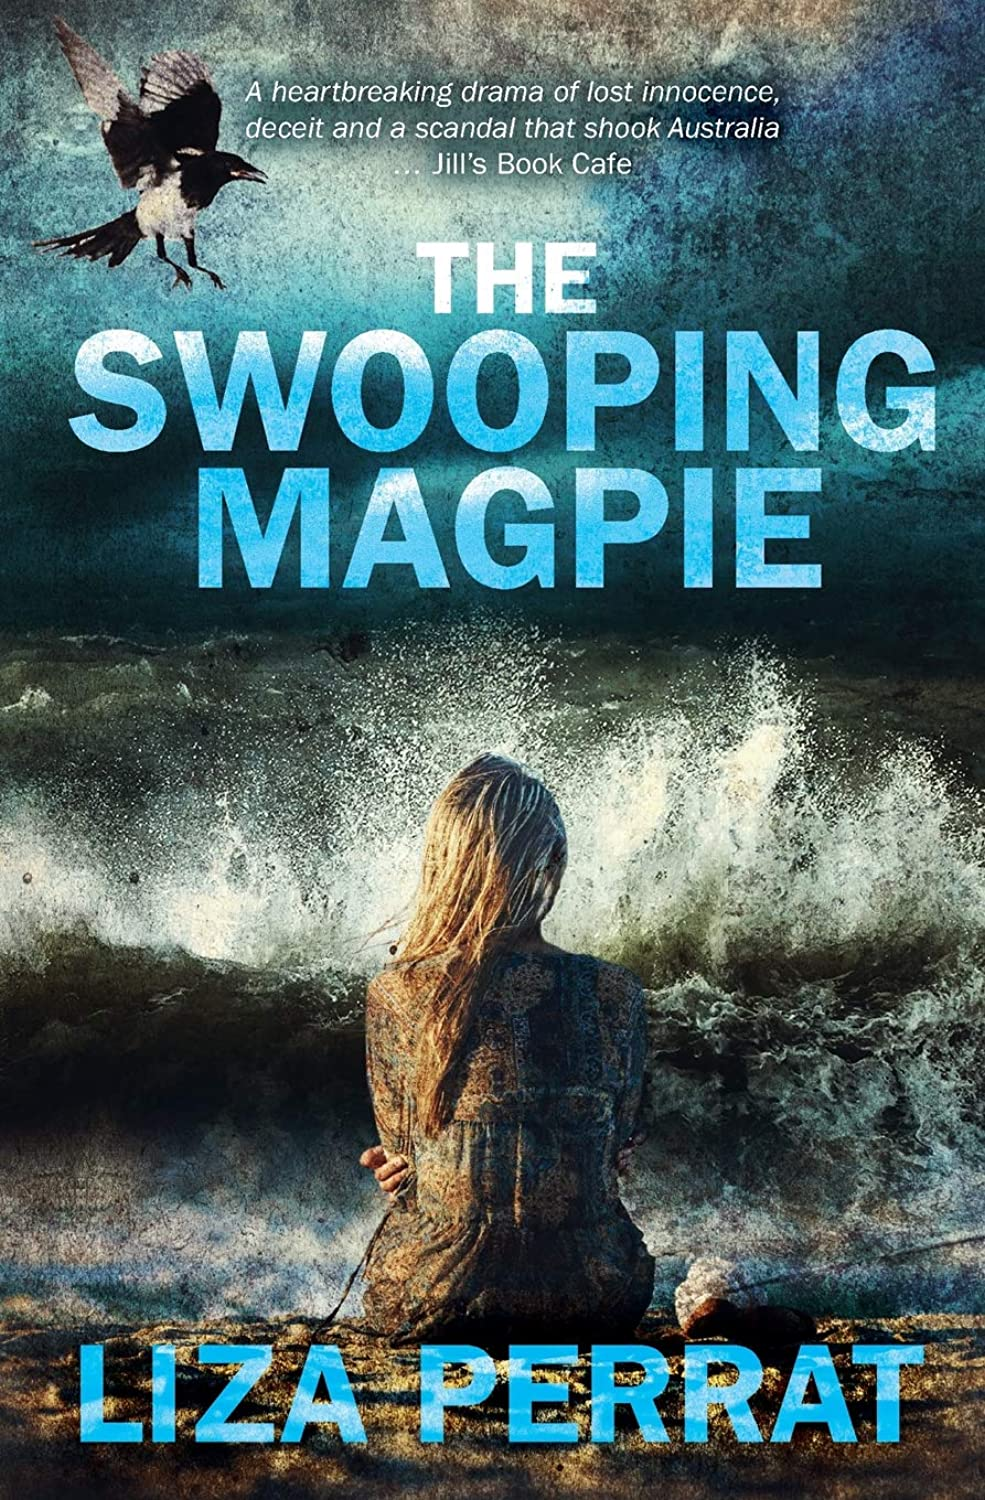 The Swooping Magpie: 1970s Australian Family Drama